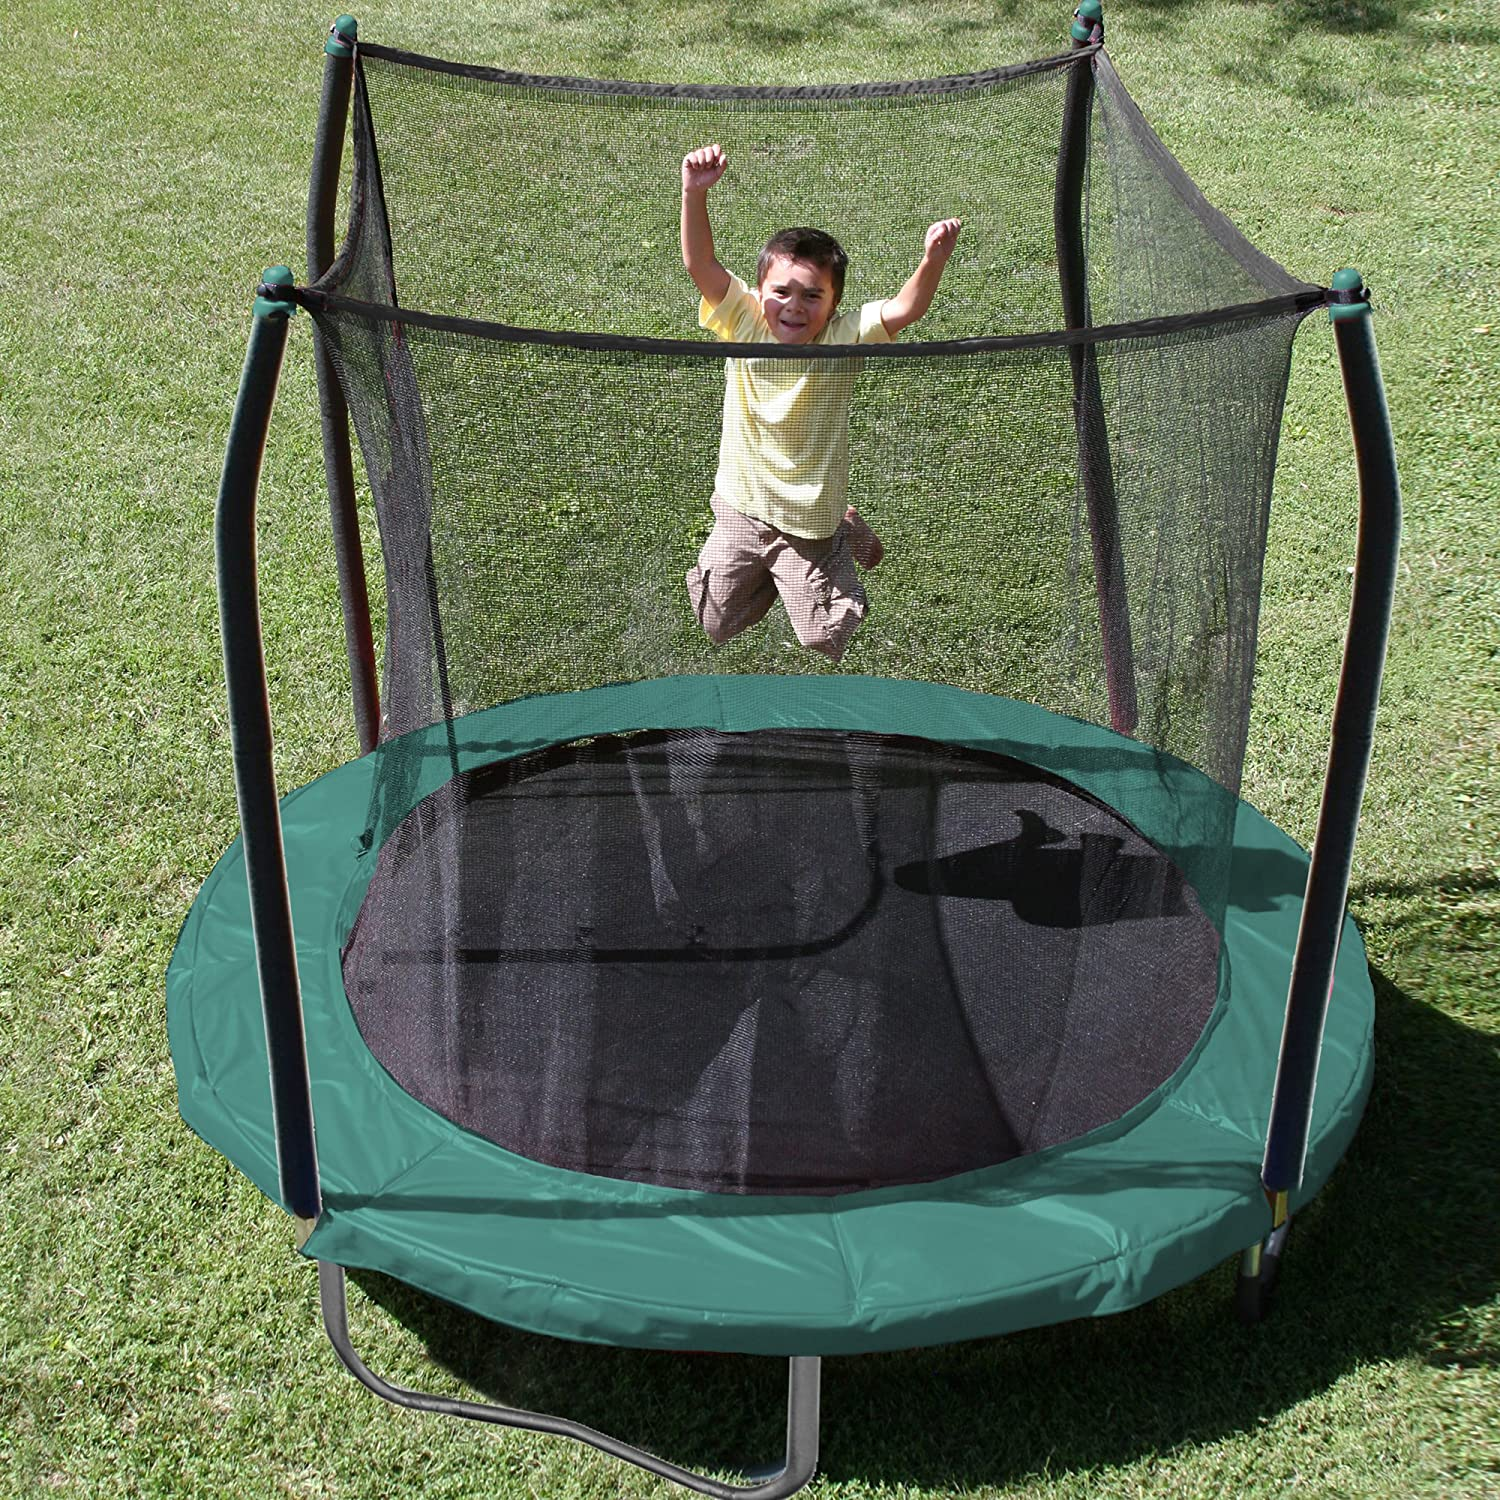 small trampoline for kids adults exercise toddlers on sale